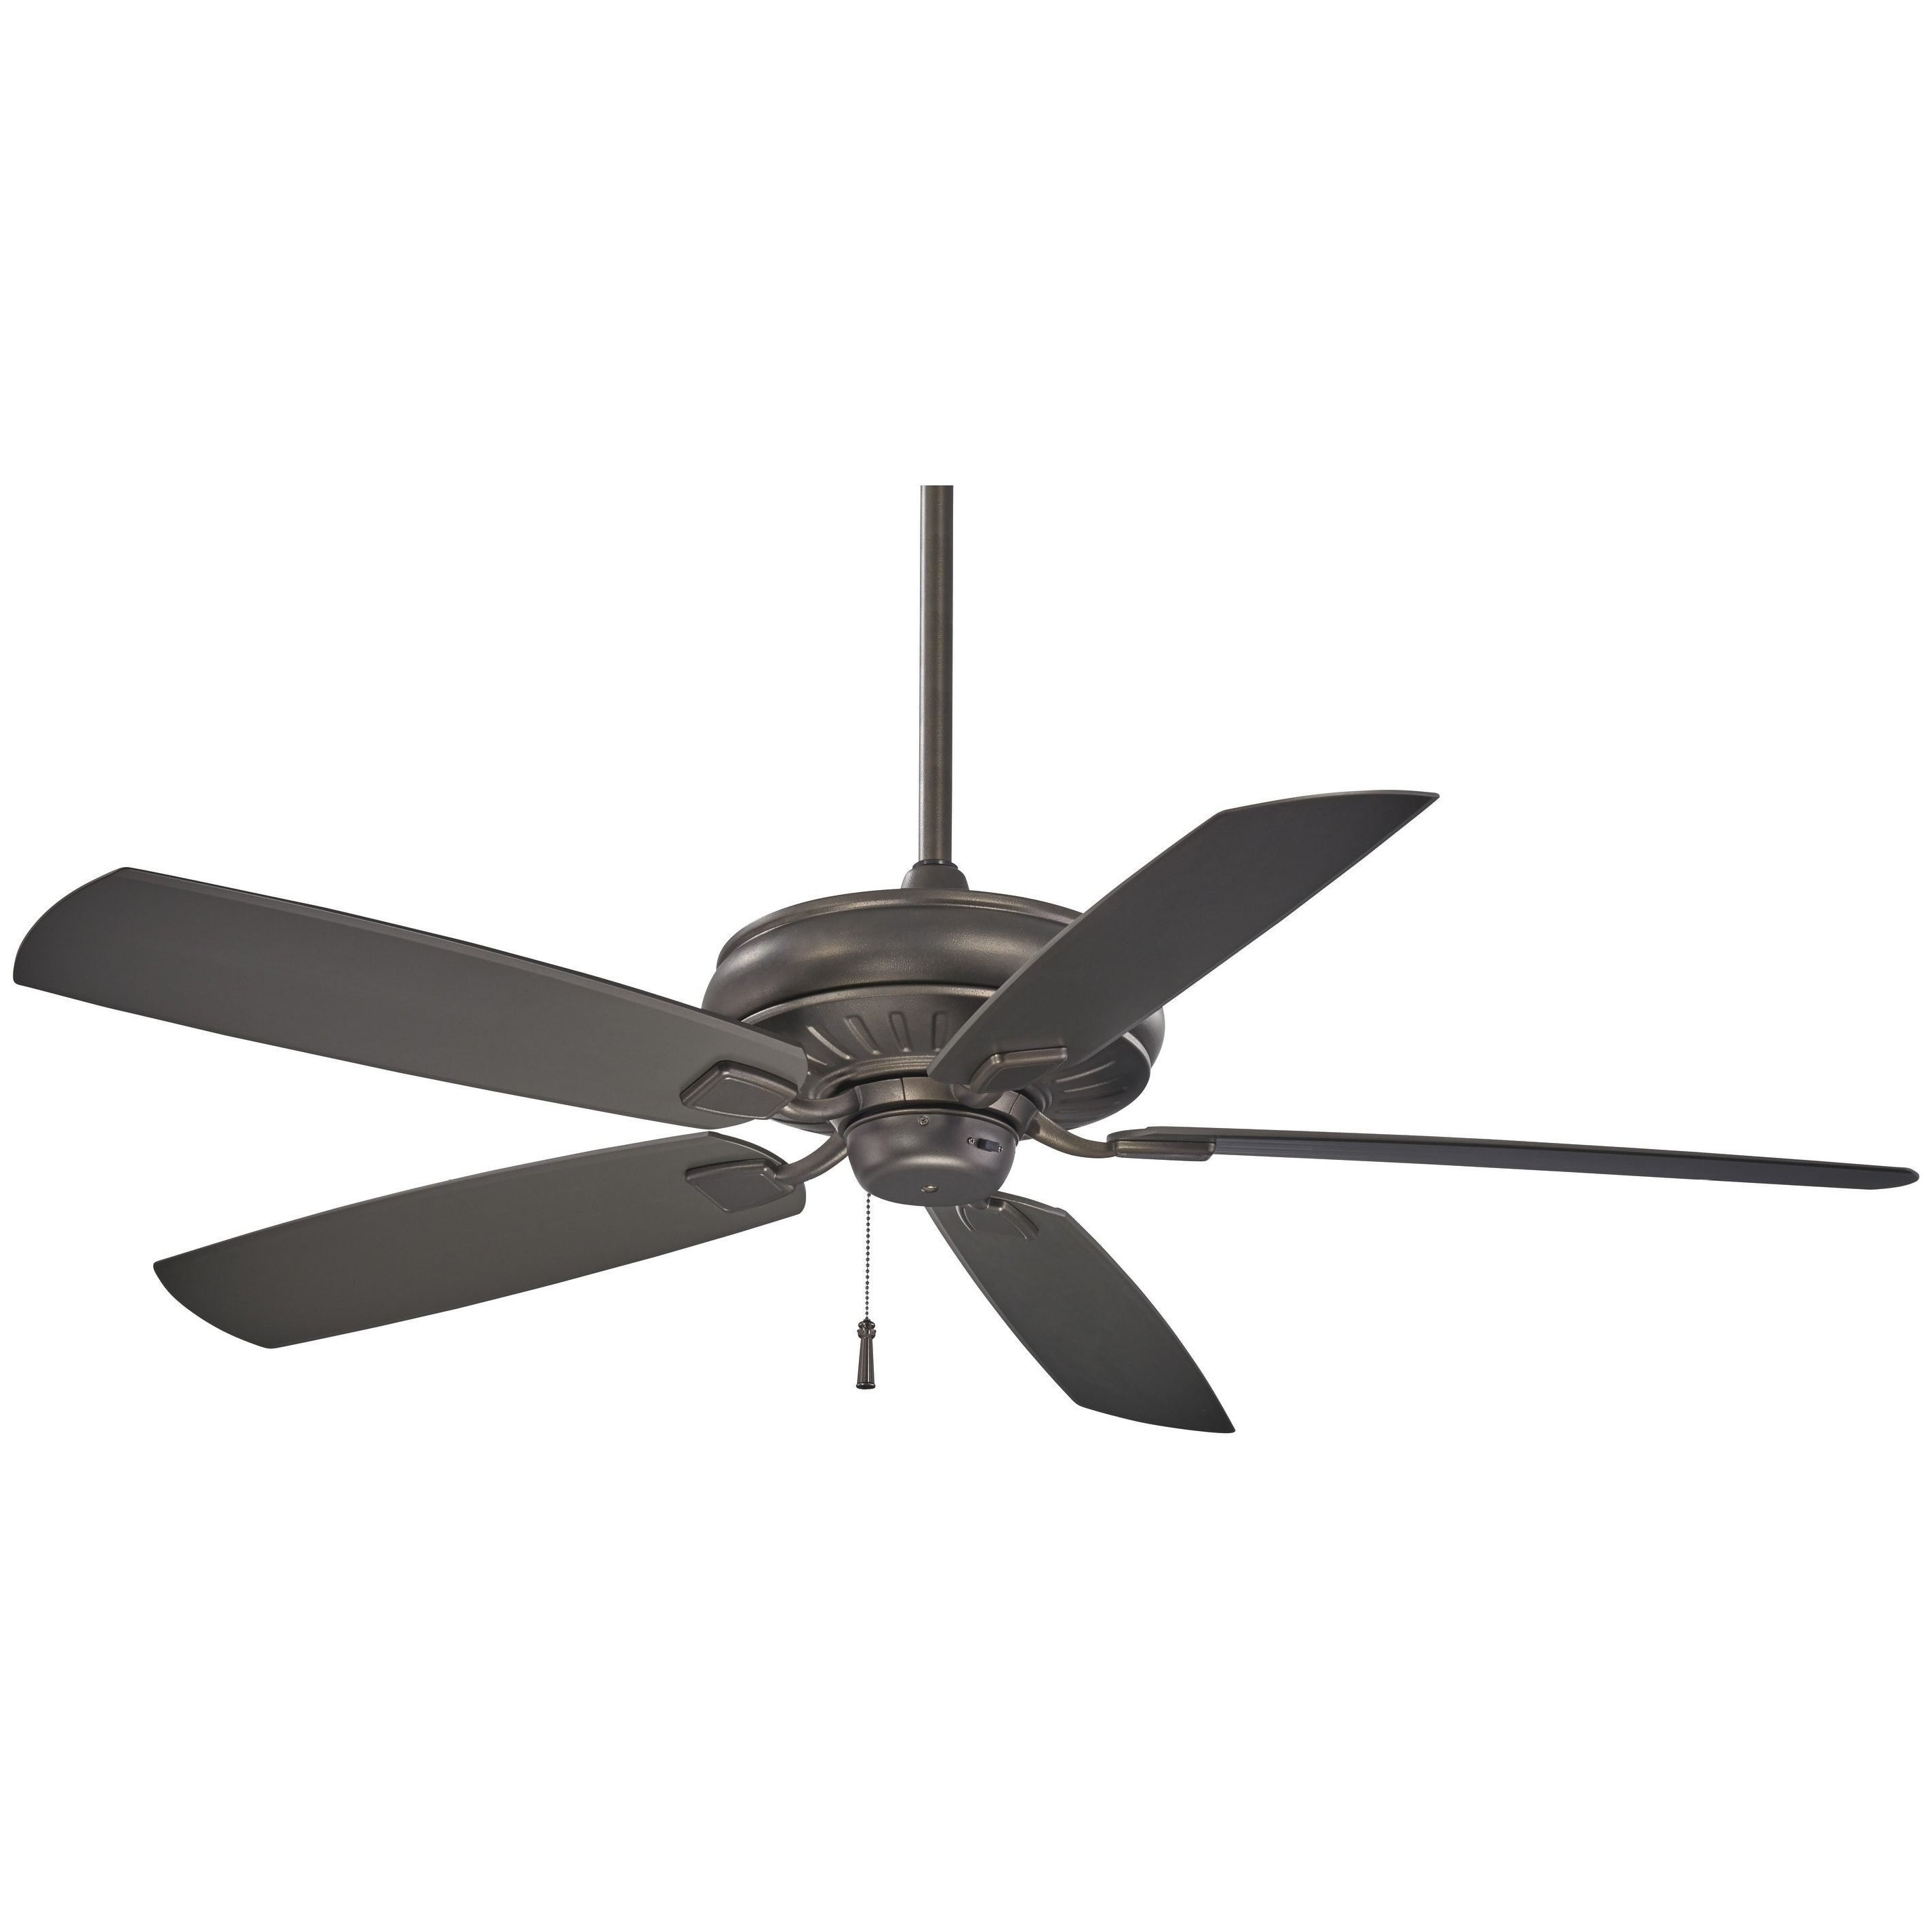 "Blomquist 5 Blade Outdoor Ceiling Fans Intended For Most Recent Minka Aire Sunseeker 60"" Ceiling Fan (View 19 of 20)"